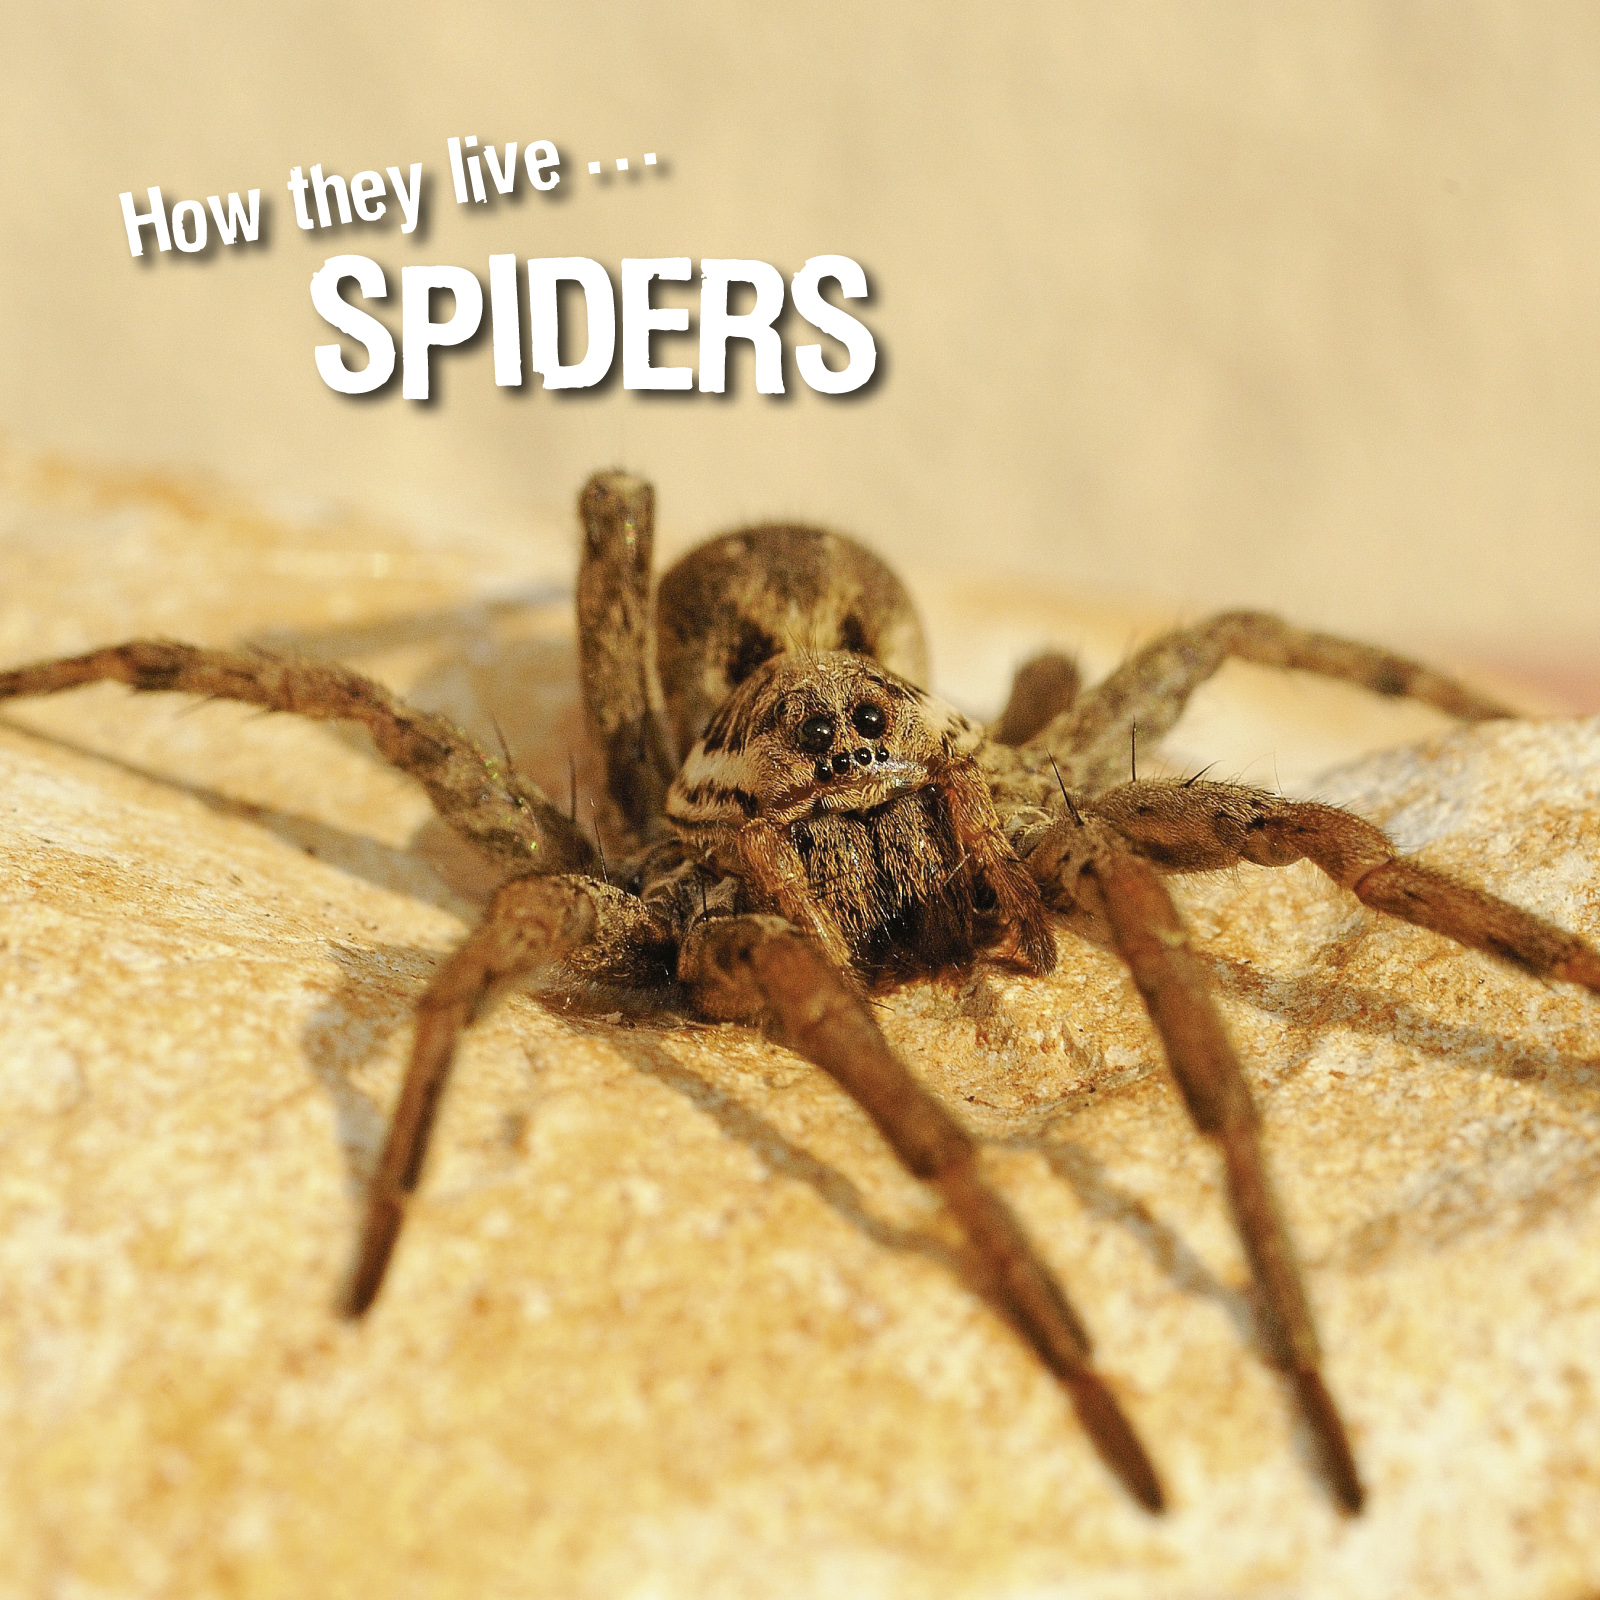 How they live... Spiders, Learn All There Is to Know About These Animals!